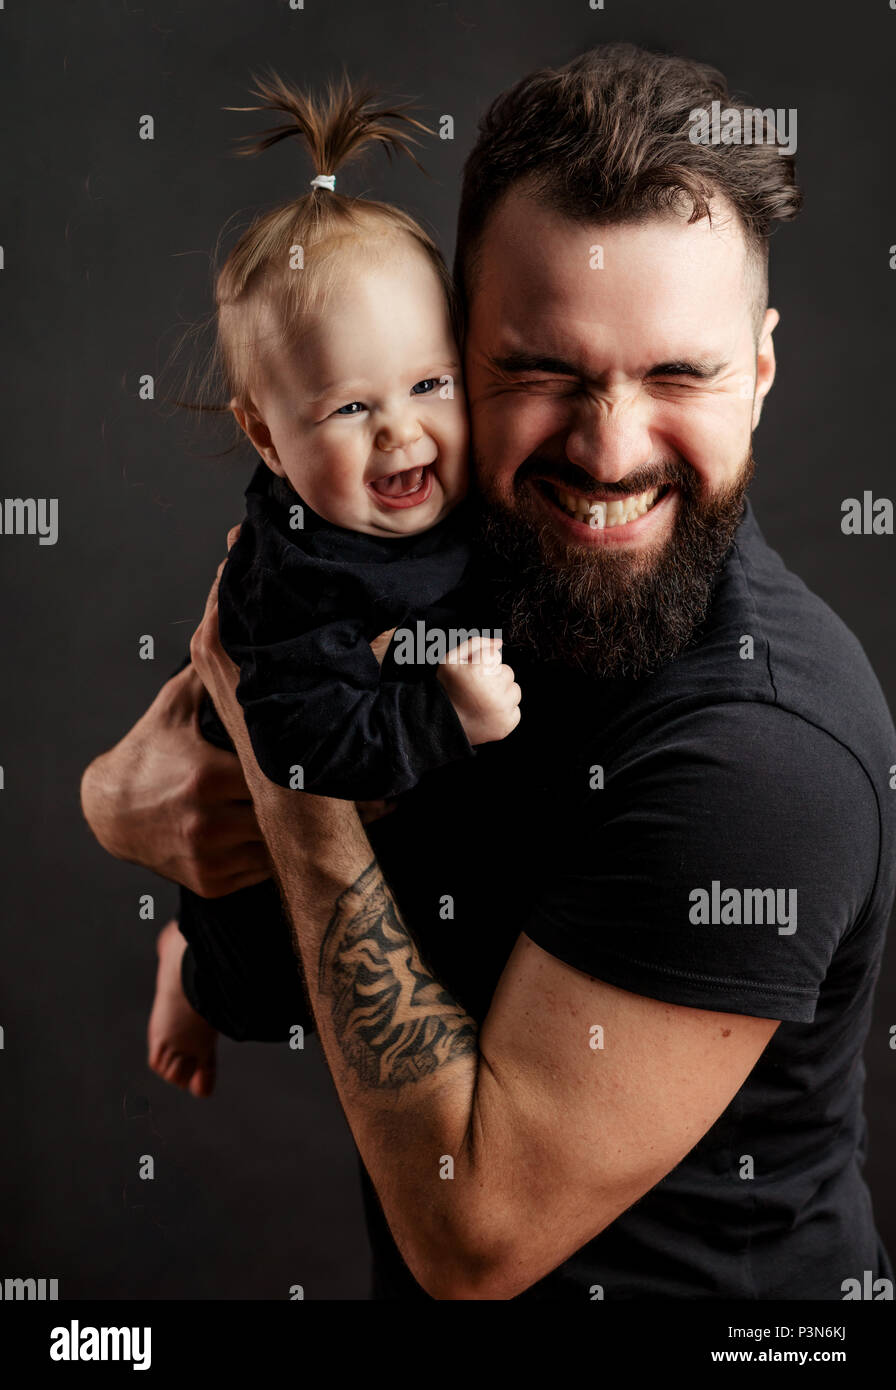 a598bb2424559 Handsome tattooed young man holding cute little baby on black background